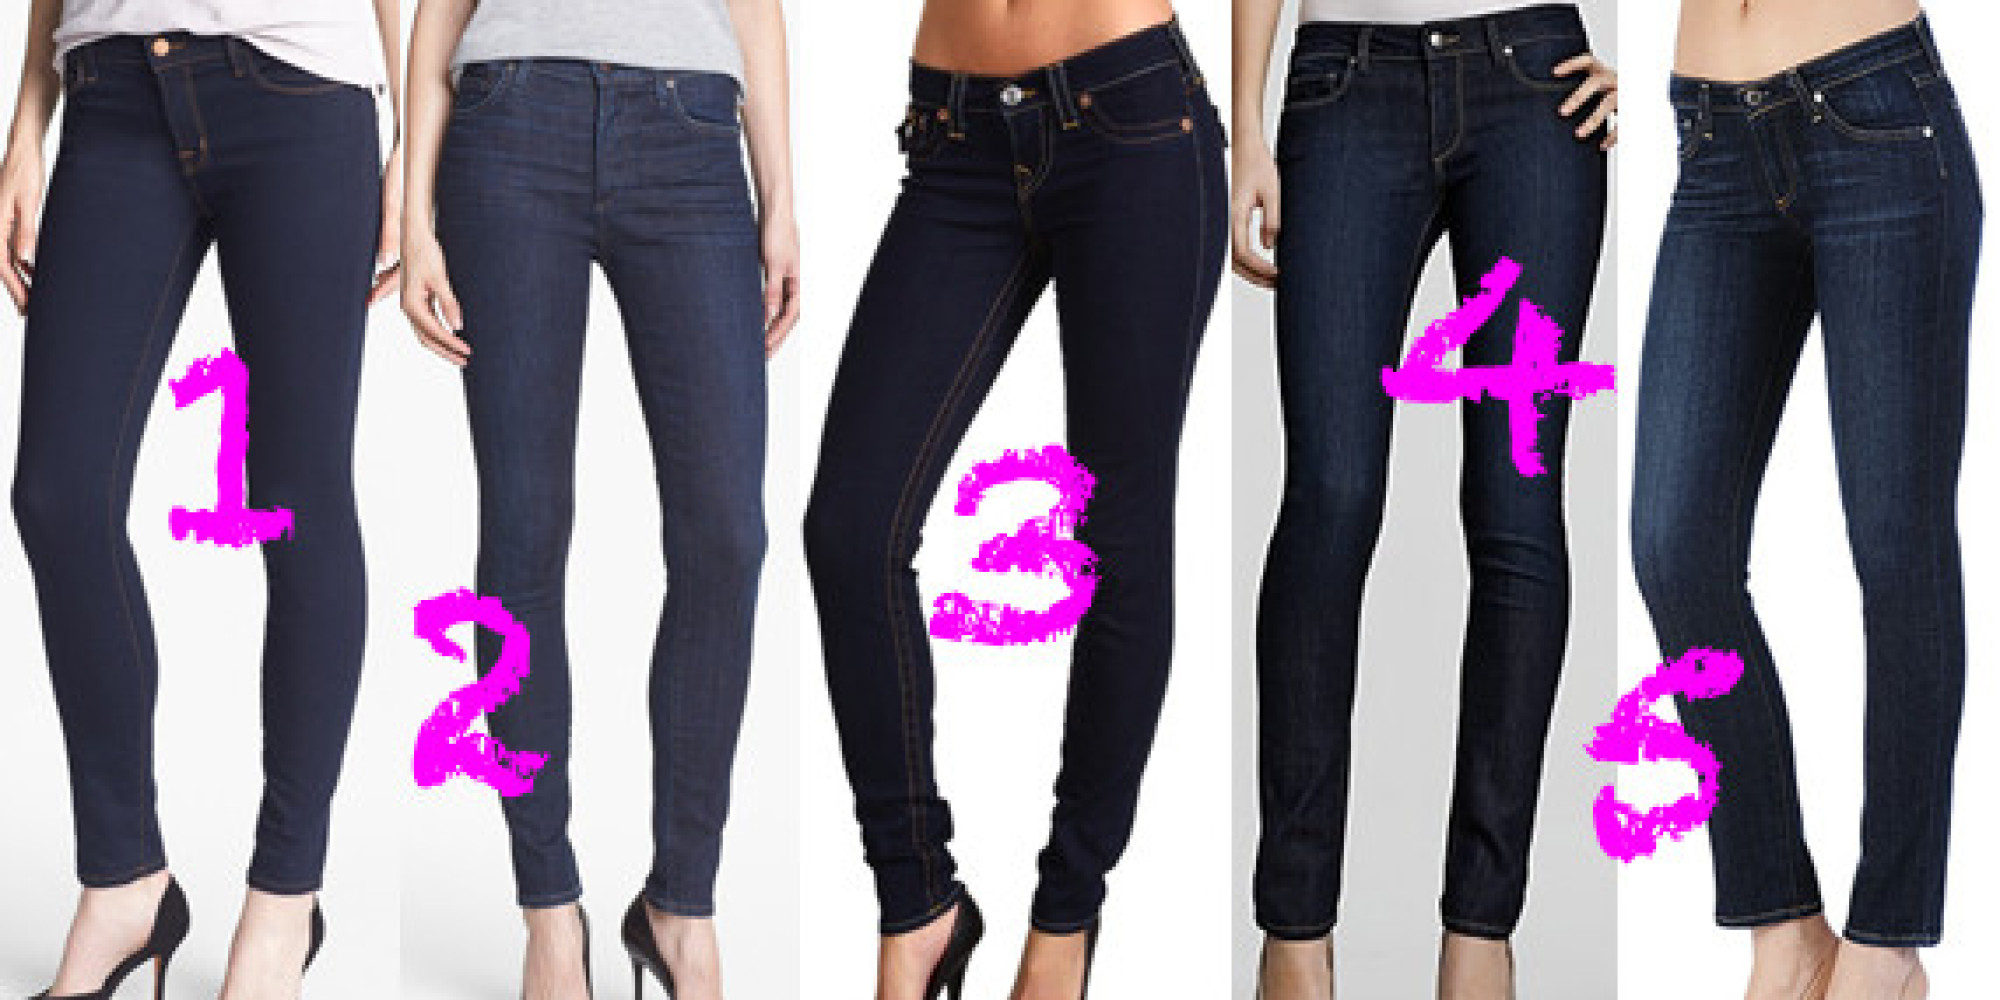 Best Skinny Jeans Under $200: The Top 5 Pairs To Try On Now | HuffPost